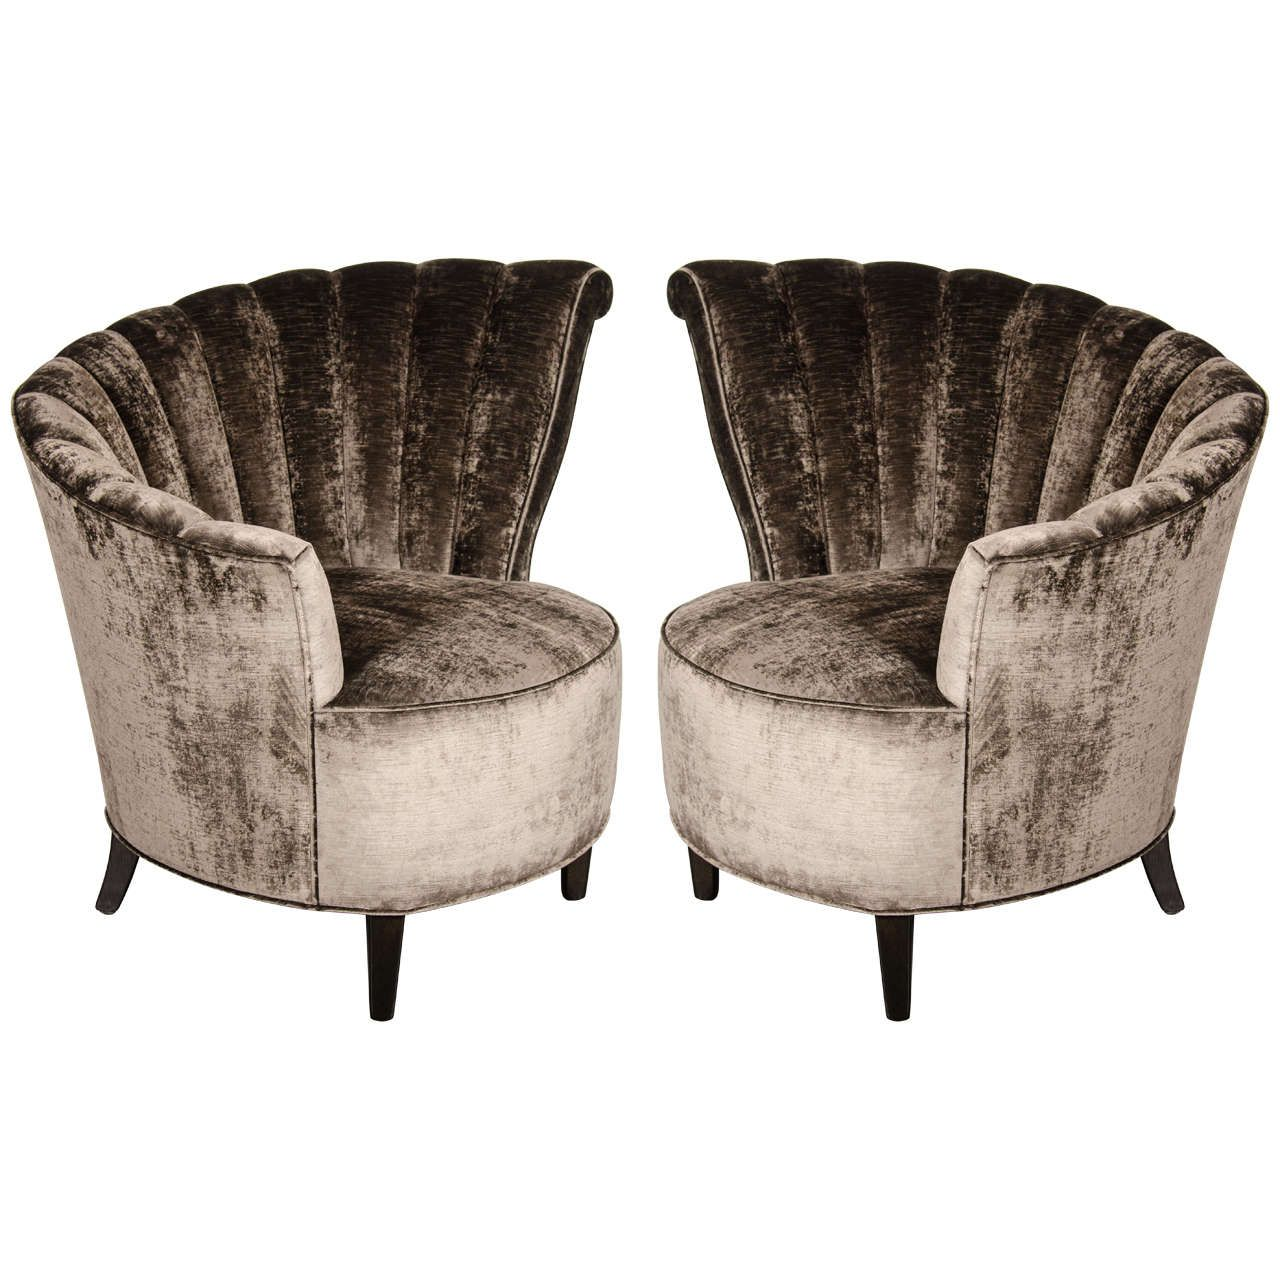 Glamorous Pair of 1940s Asymmetrical Fan Back Chairs in